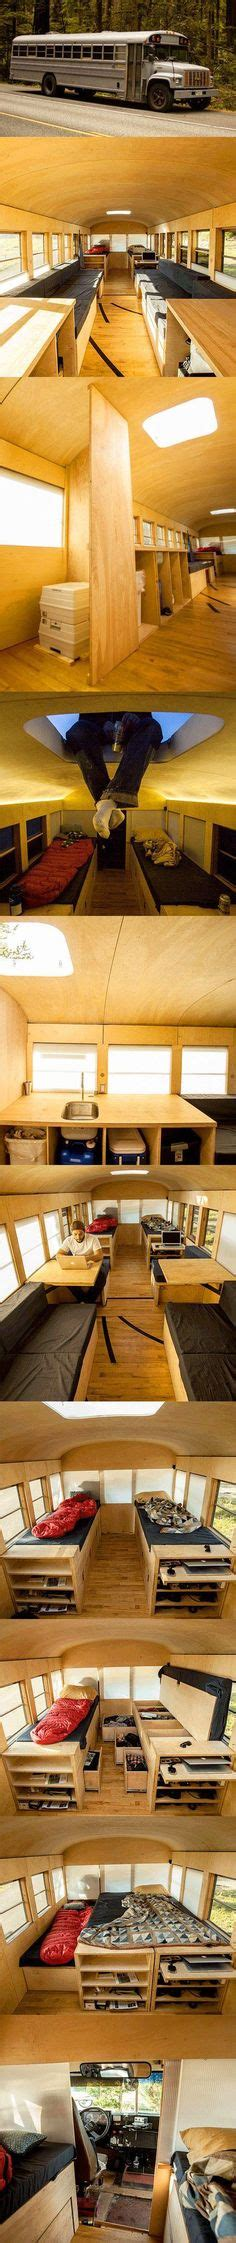 School Converted Into Small Home By Architecture Student by How To Convert A Used Trailer To A Cer Diy